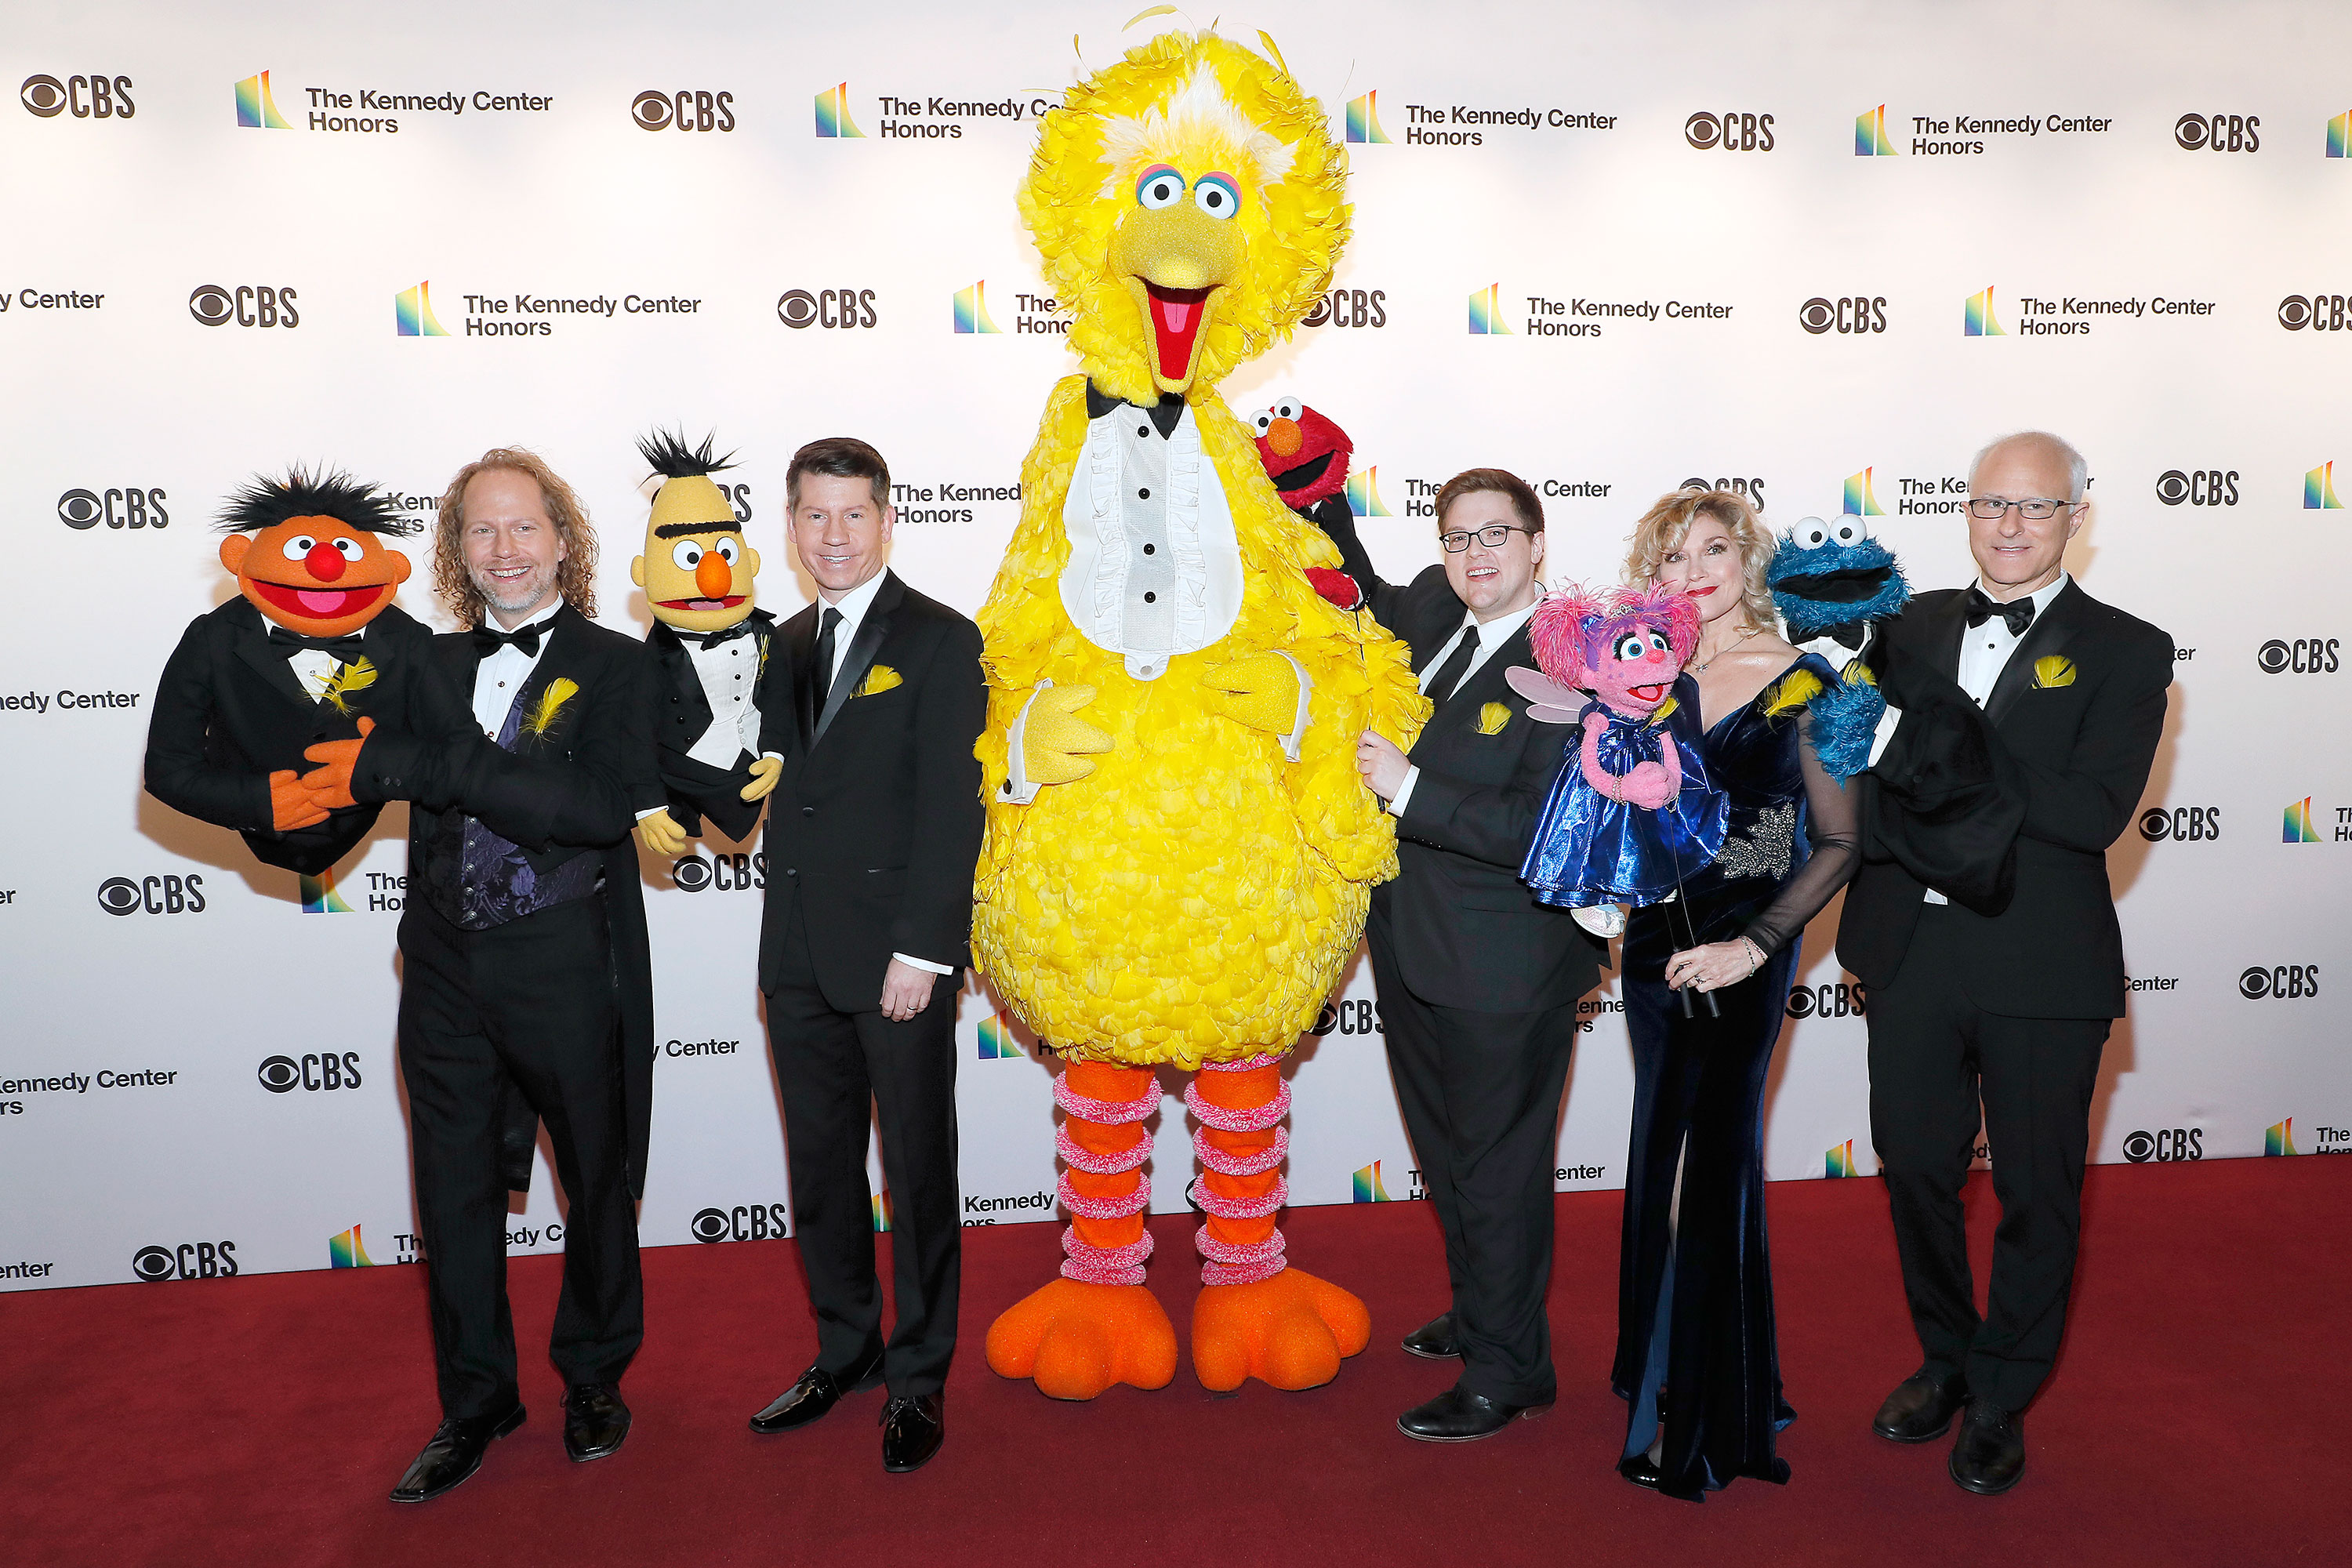 Kennedy Center Honors celebrates the influence of Sesame Street